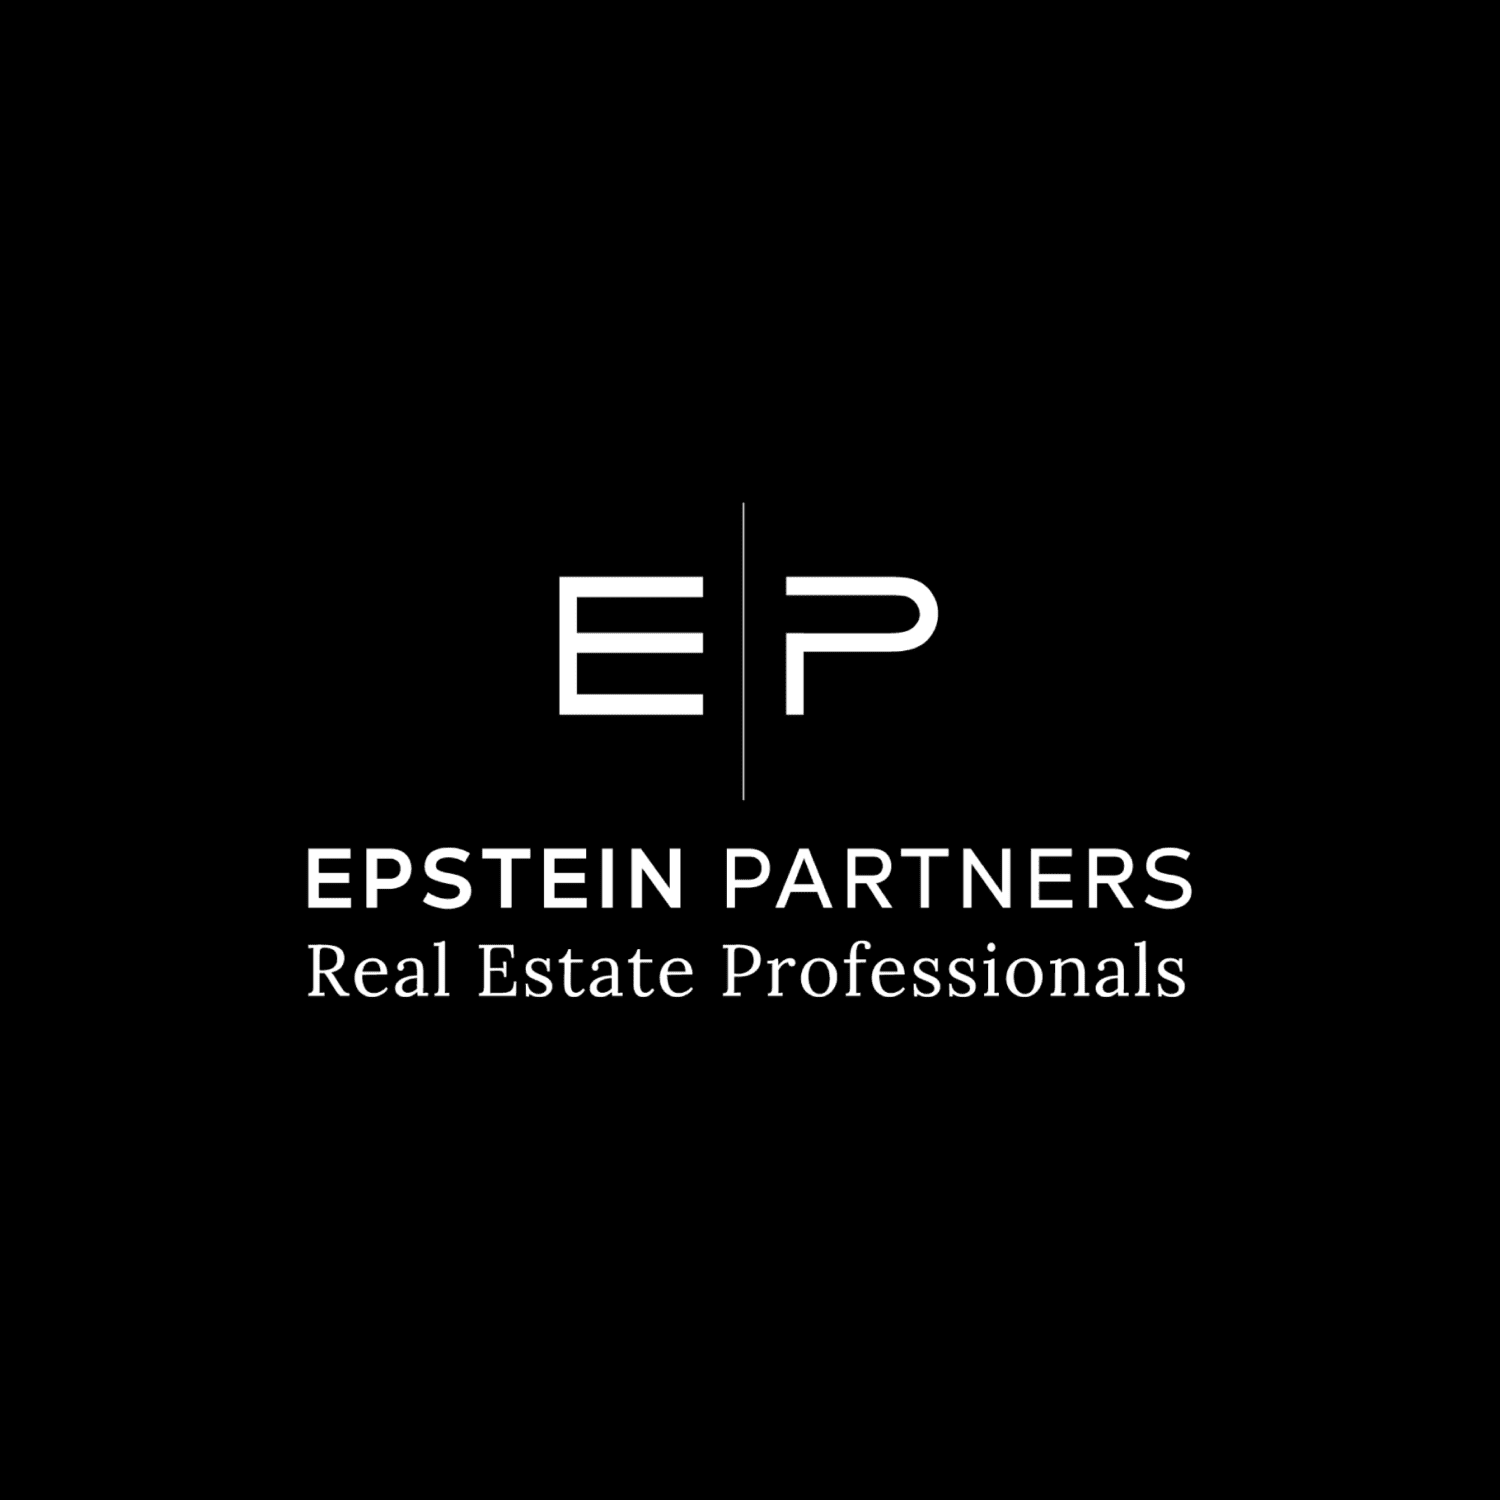 Let The Epstein Partners Make Your Real Estate Dreams Come True.